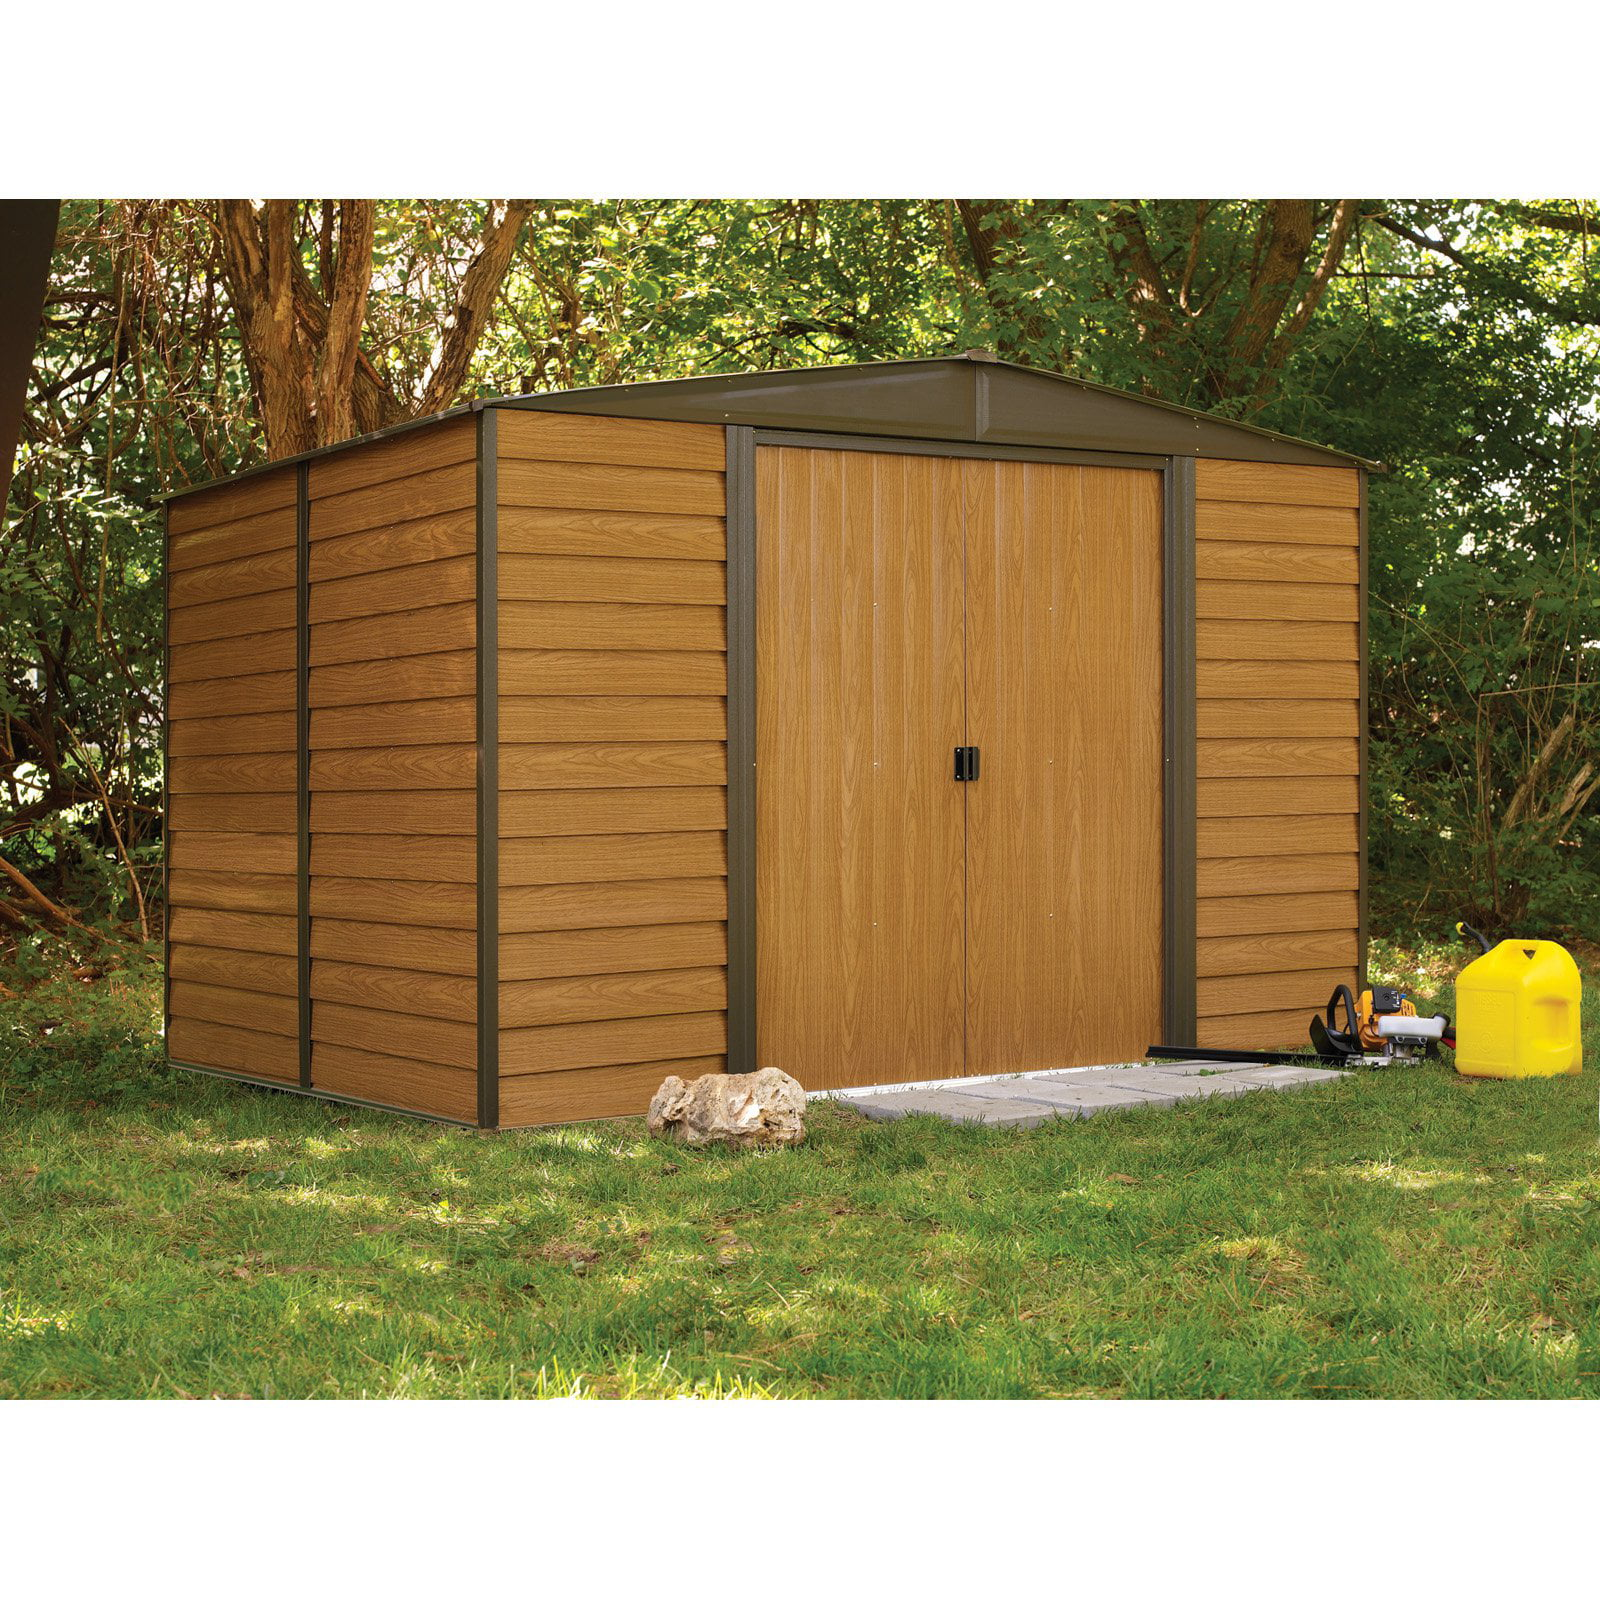 Arrow Shed Woodridge 10 X 6 Ft. Steel Storage Shed   Walmart.com